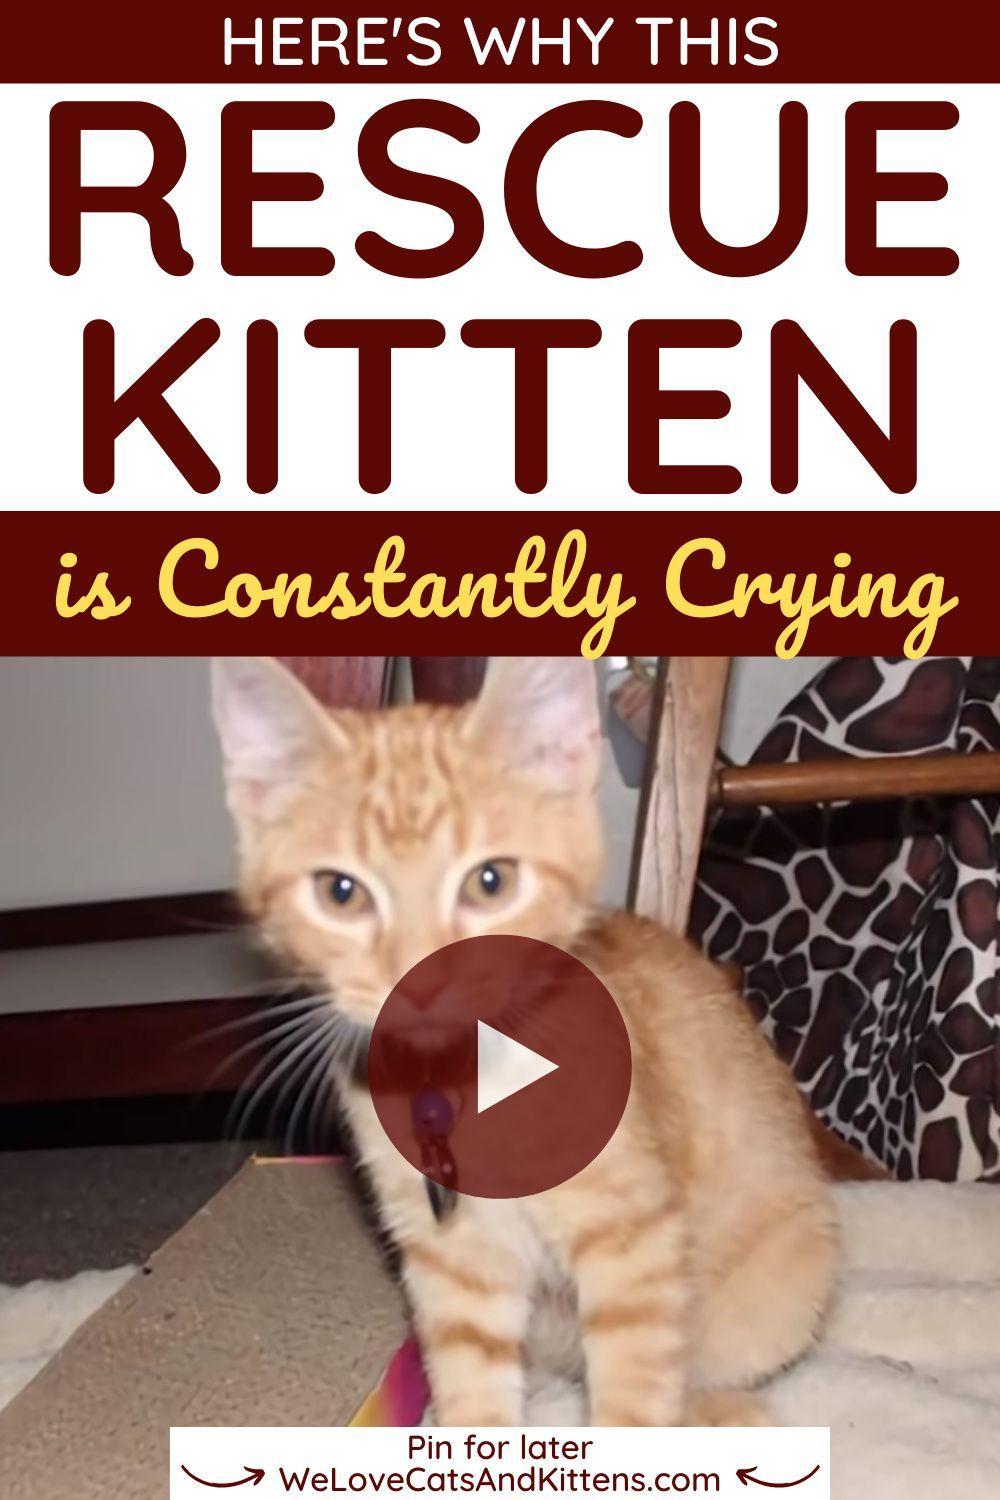 This Rescue Kitten Was Constantly Crying Then His Owner Realized He Was Trying To Say Something We Love Cats And Kittens In 2020 Kitten Rescue Cat Gif Cats